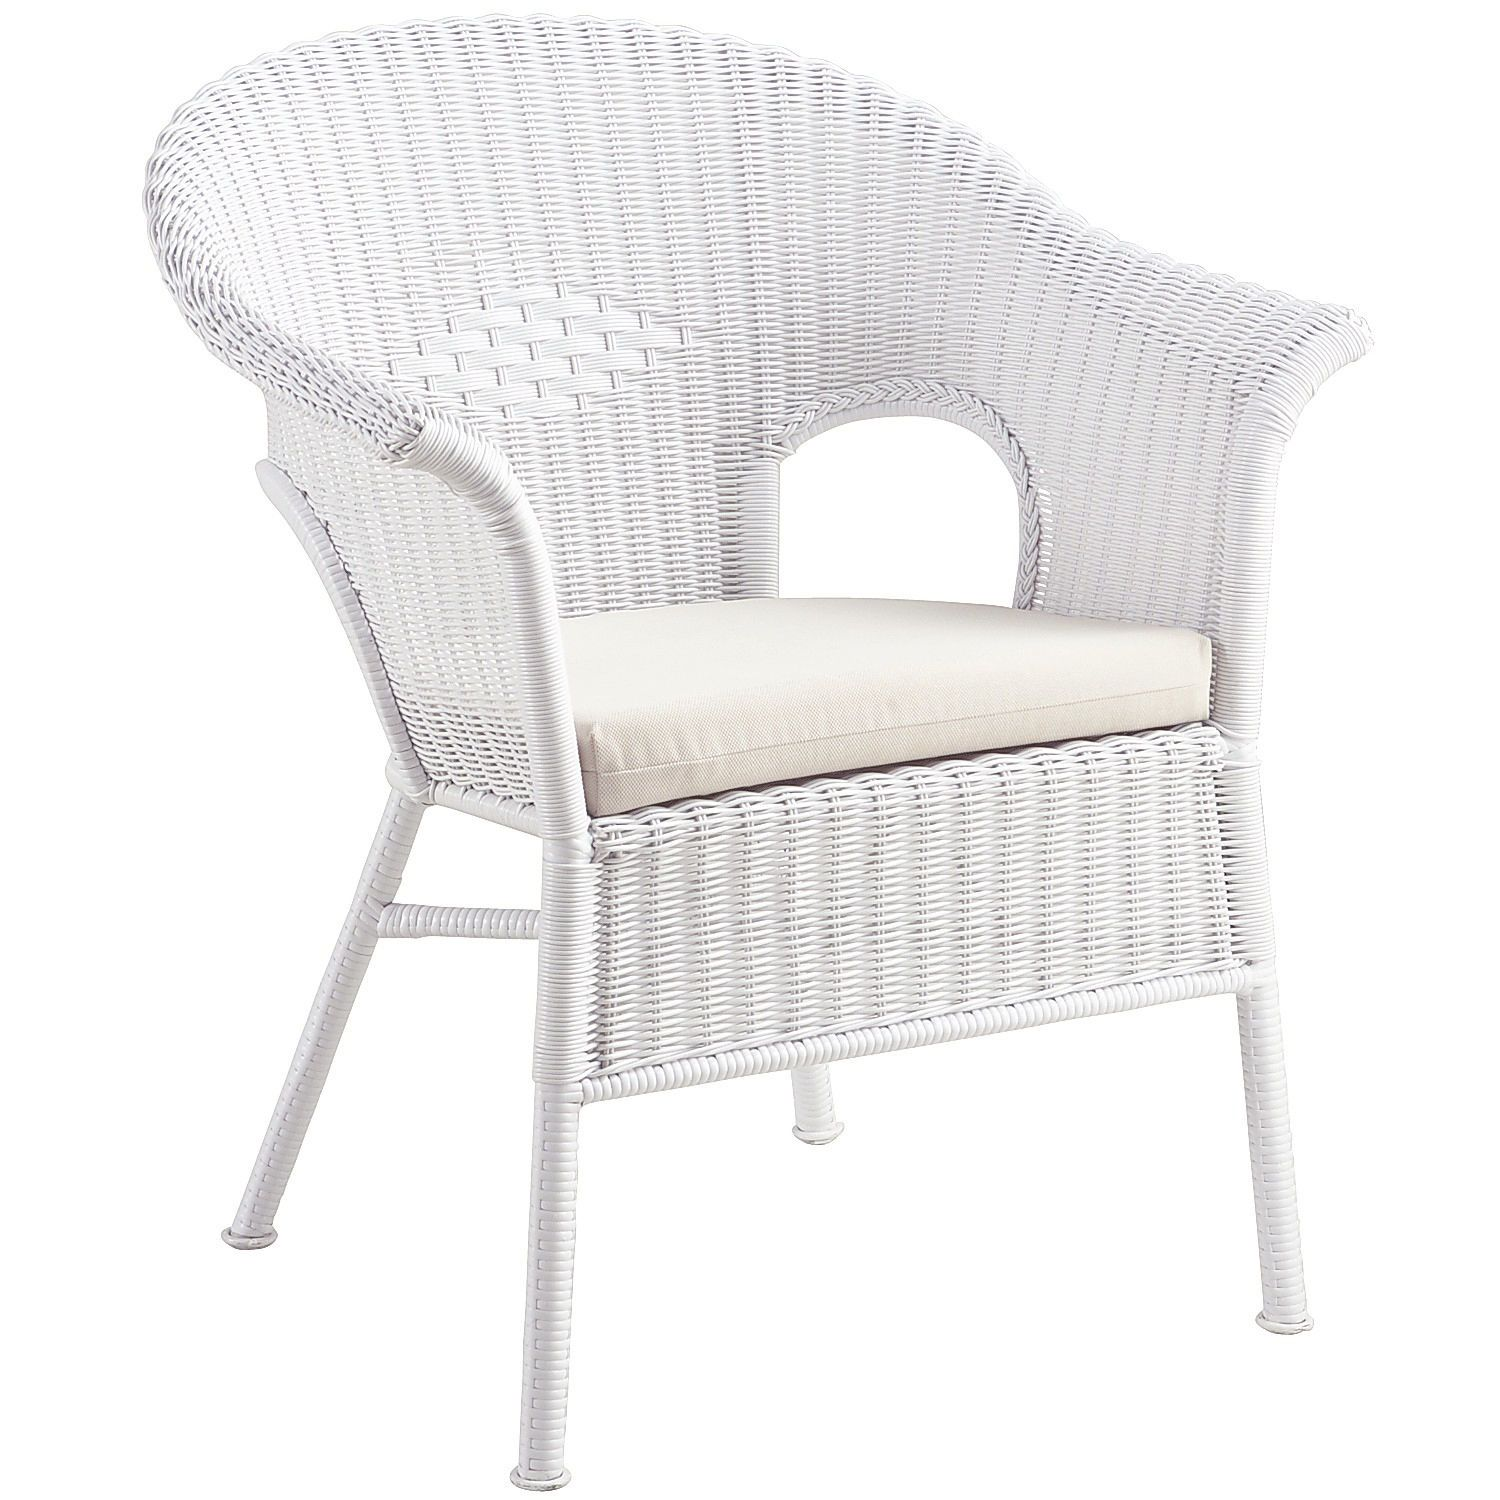 Casbah White Stacking Chair White patio furniture, Most